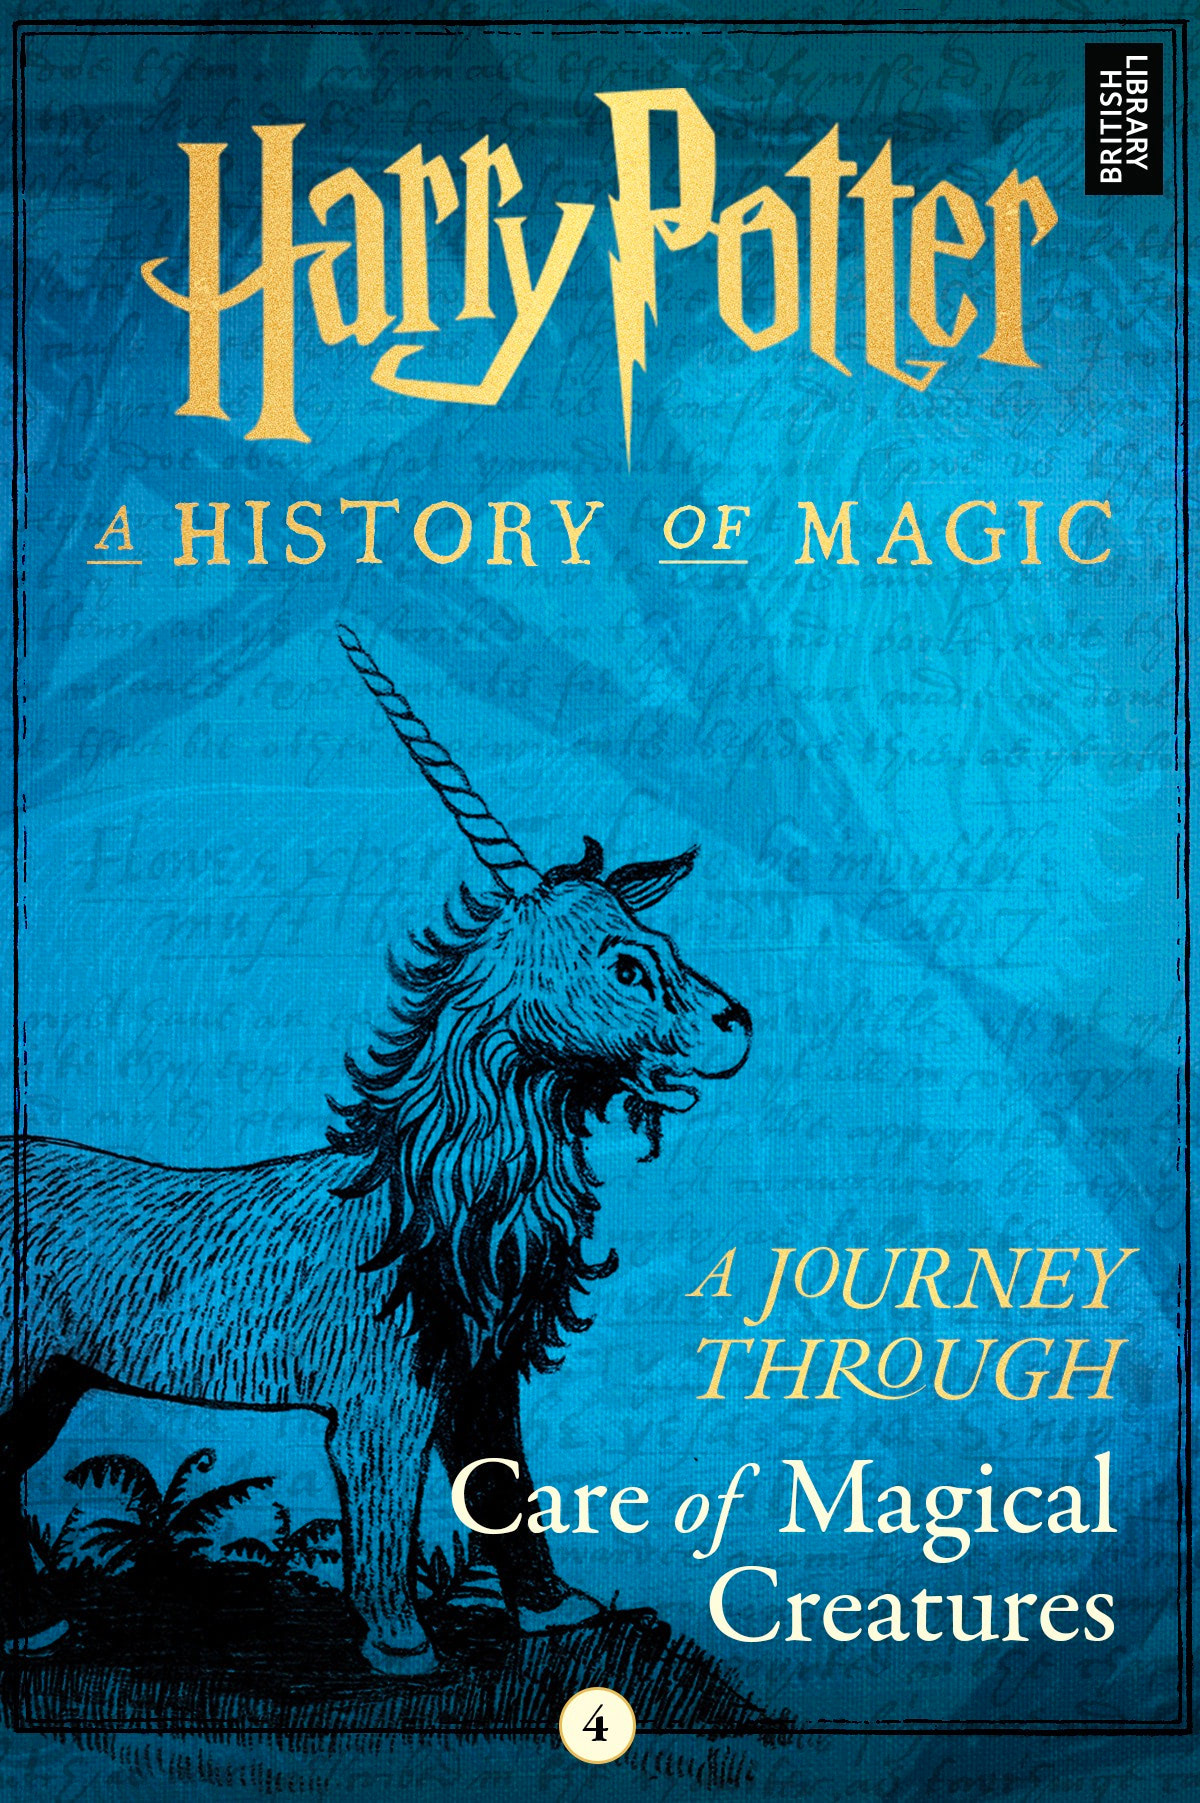 Harry Potter: A Journey Through Care of Magical Creatures